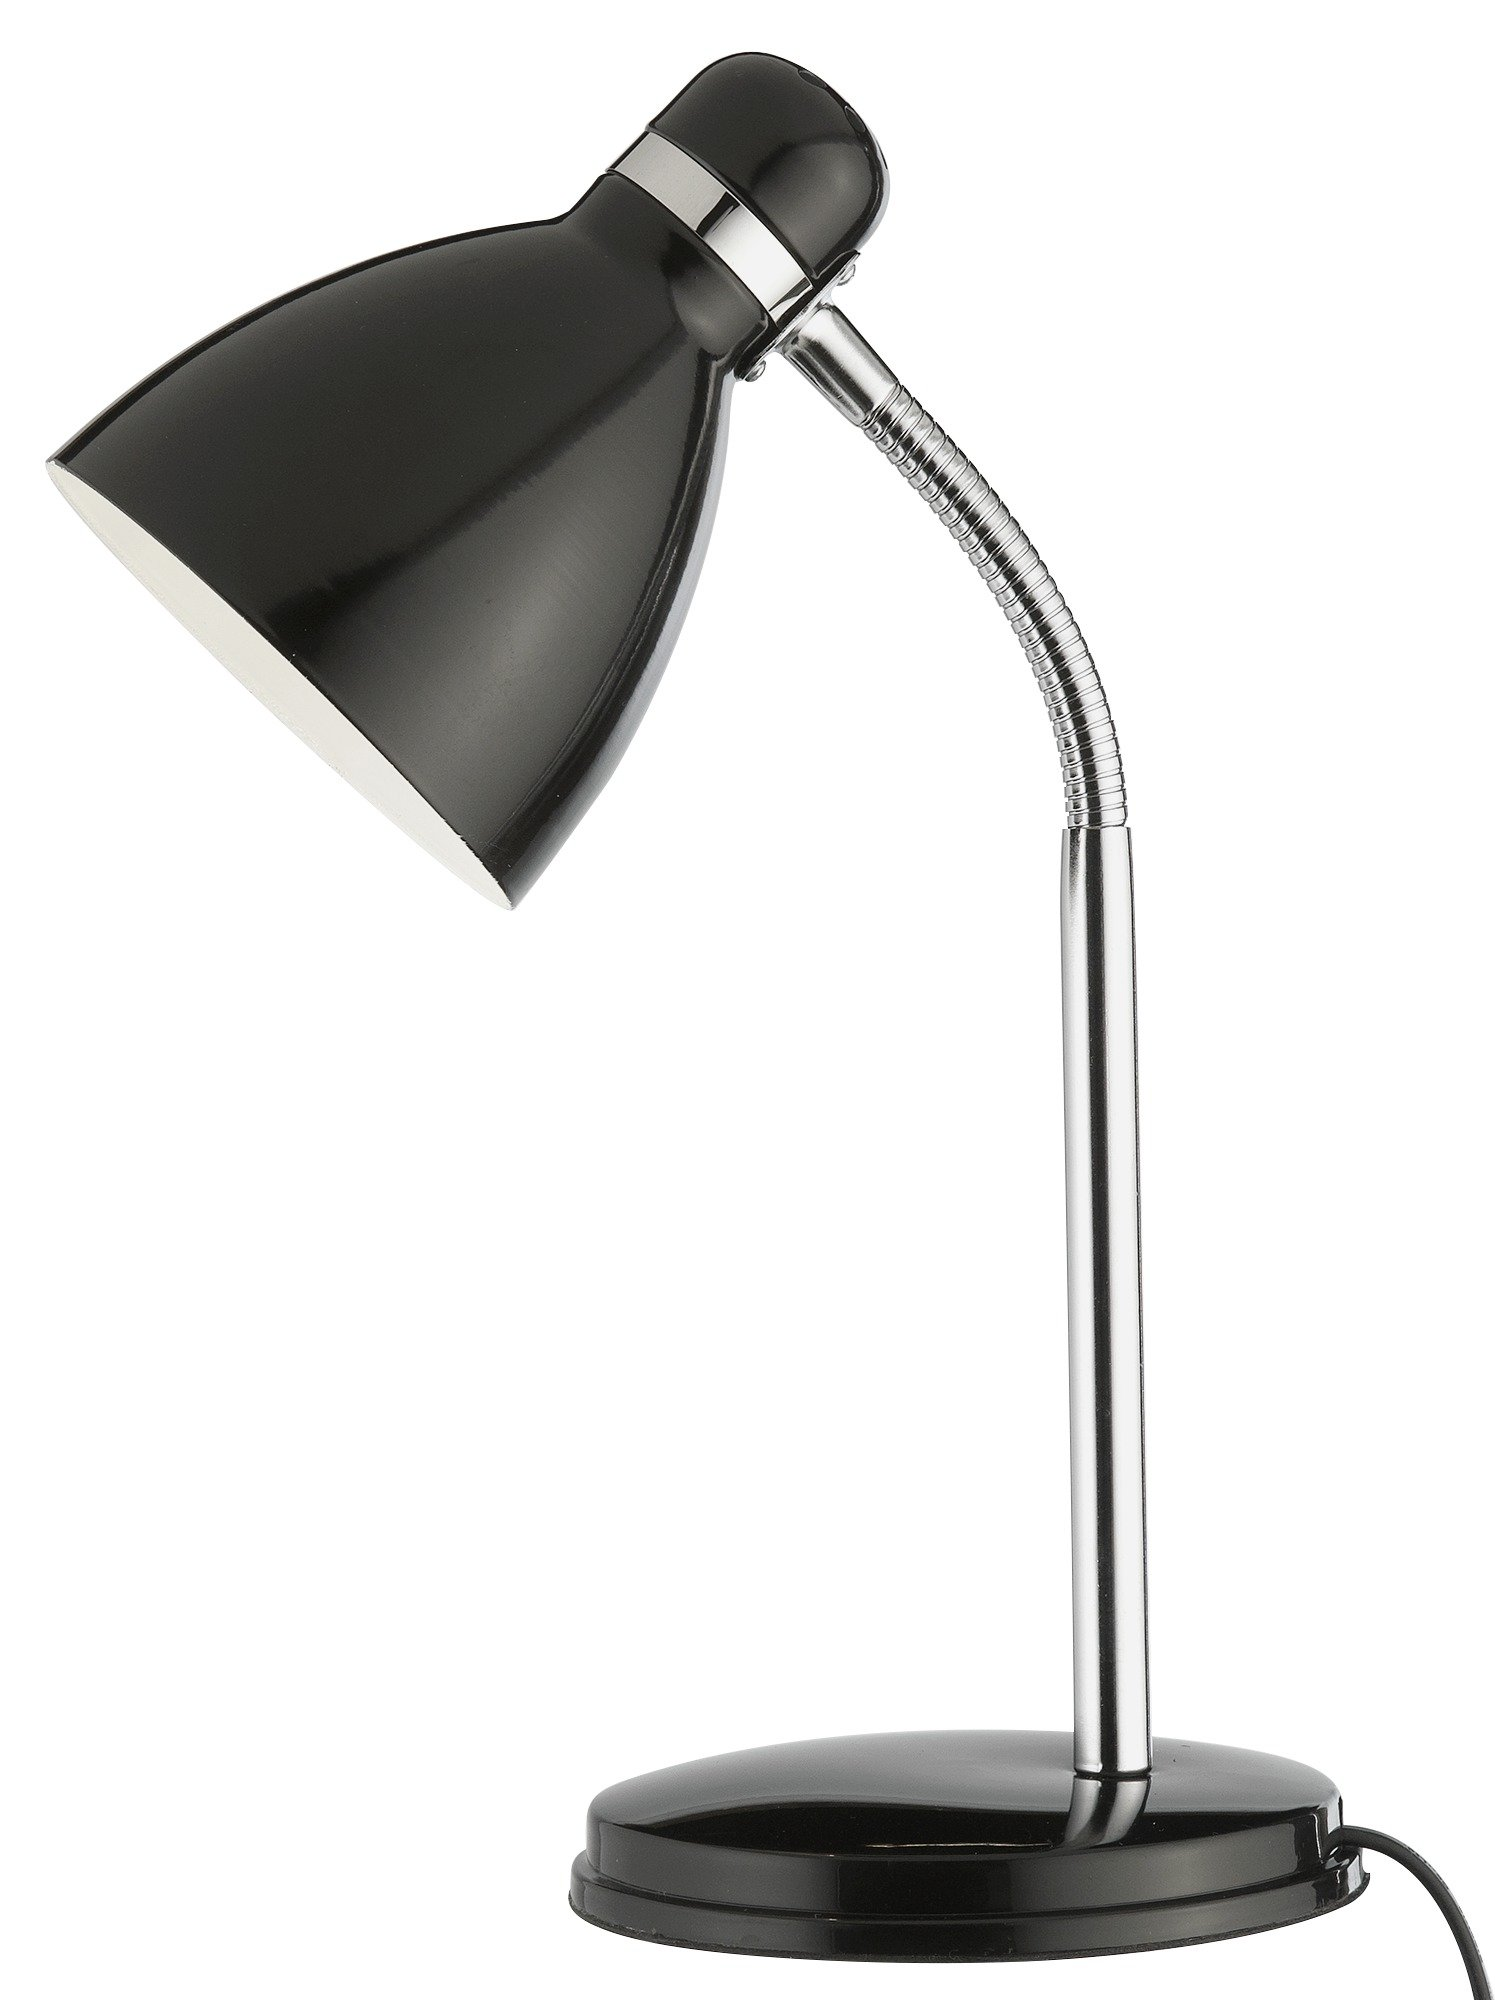 Argos Home Desk Lamp - Jet Black